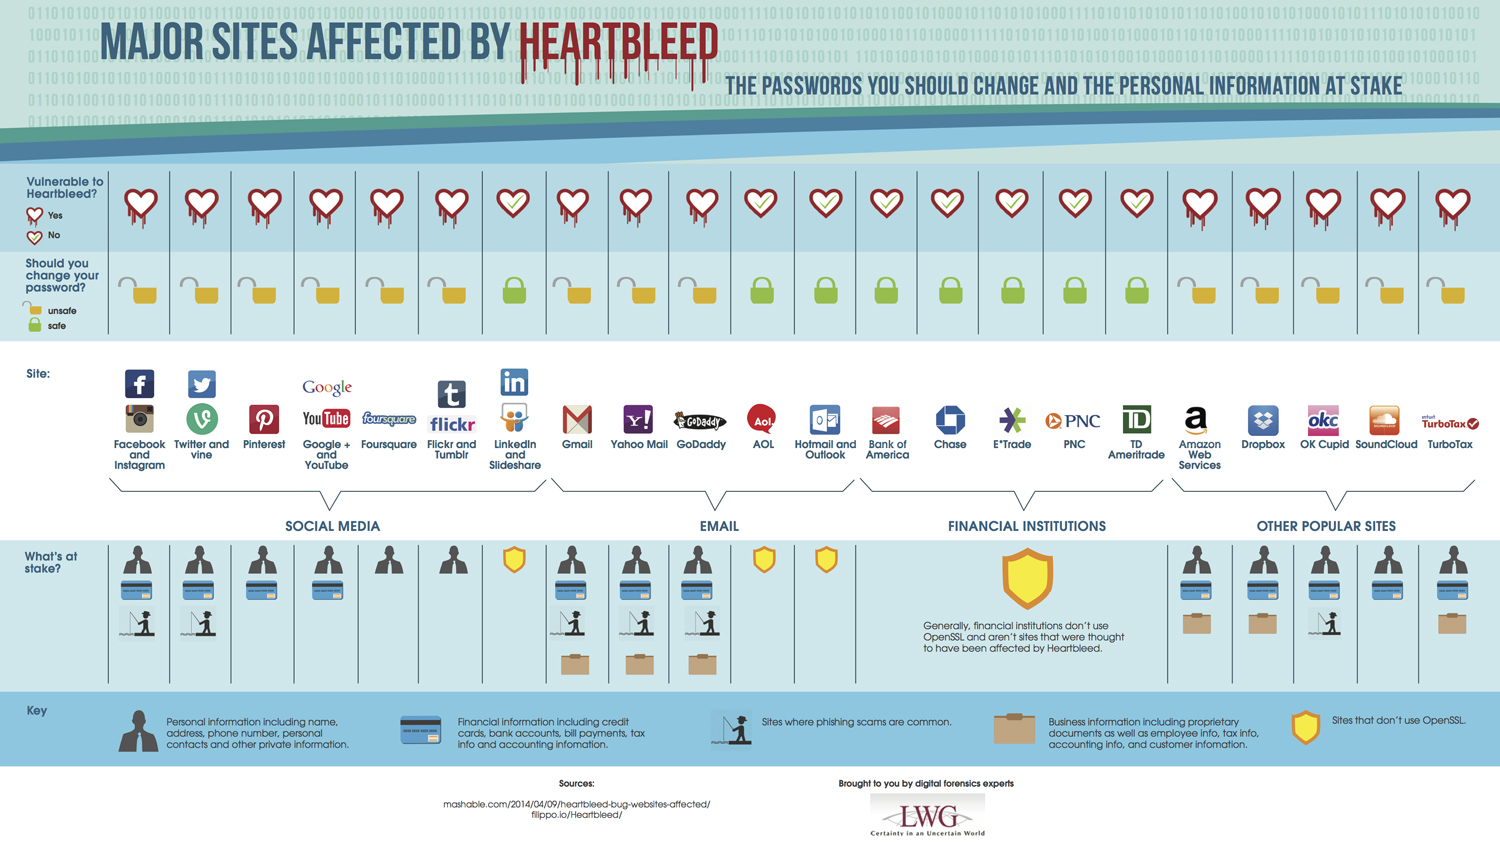 Heartbleed Passwords LWG Consulting